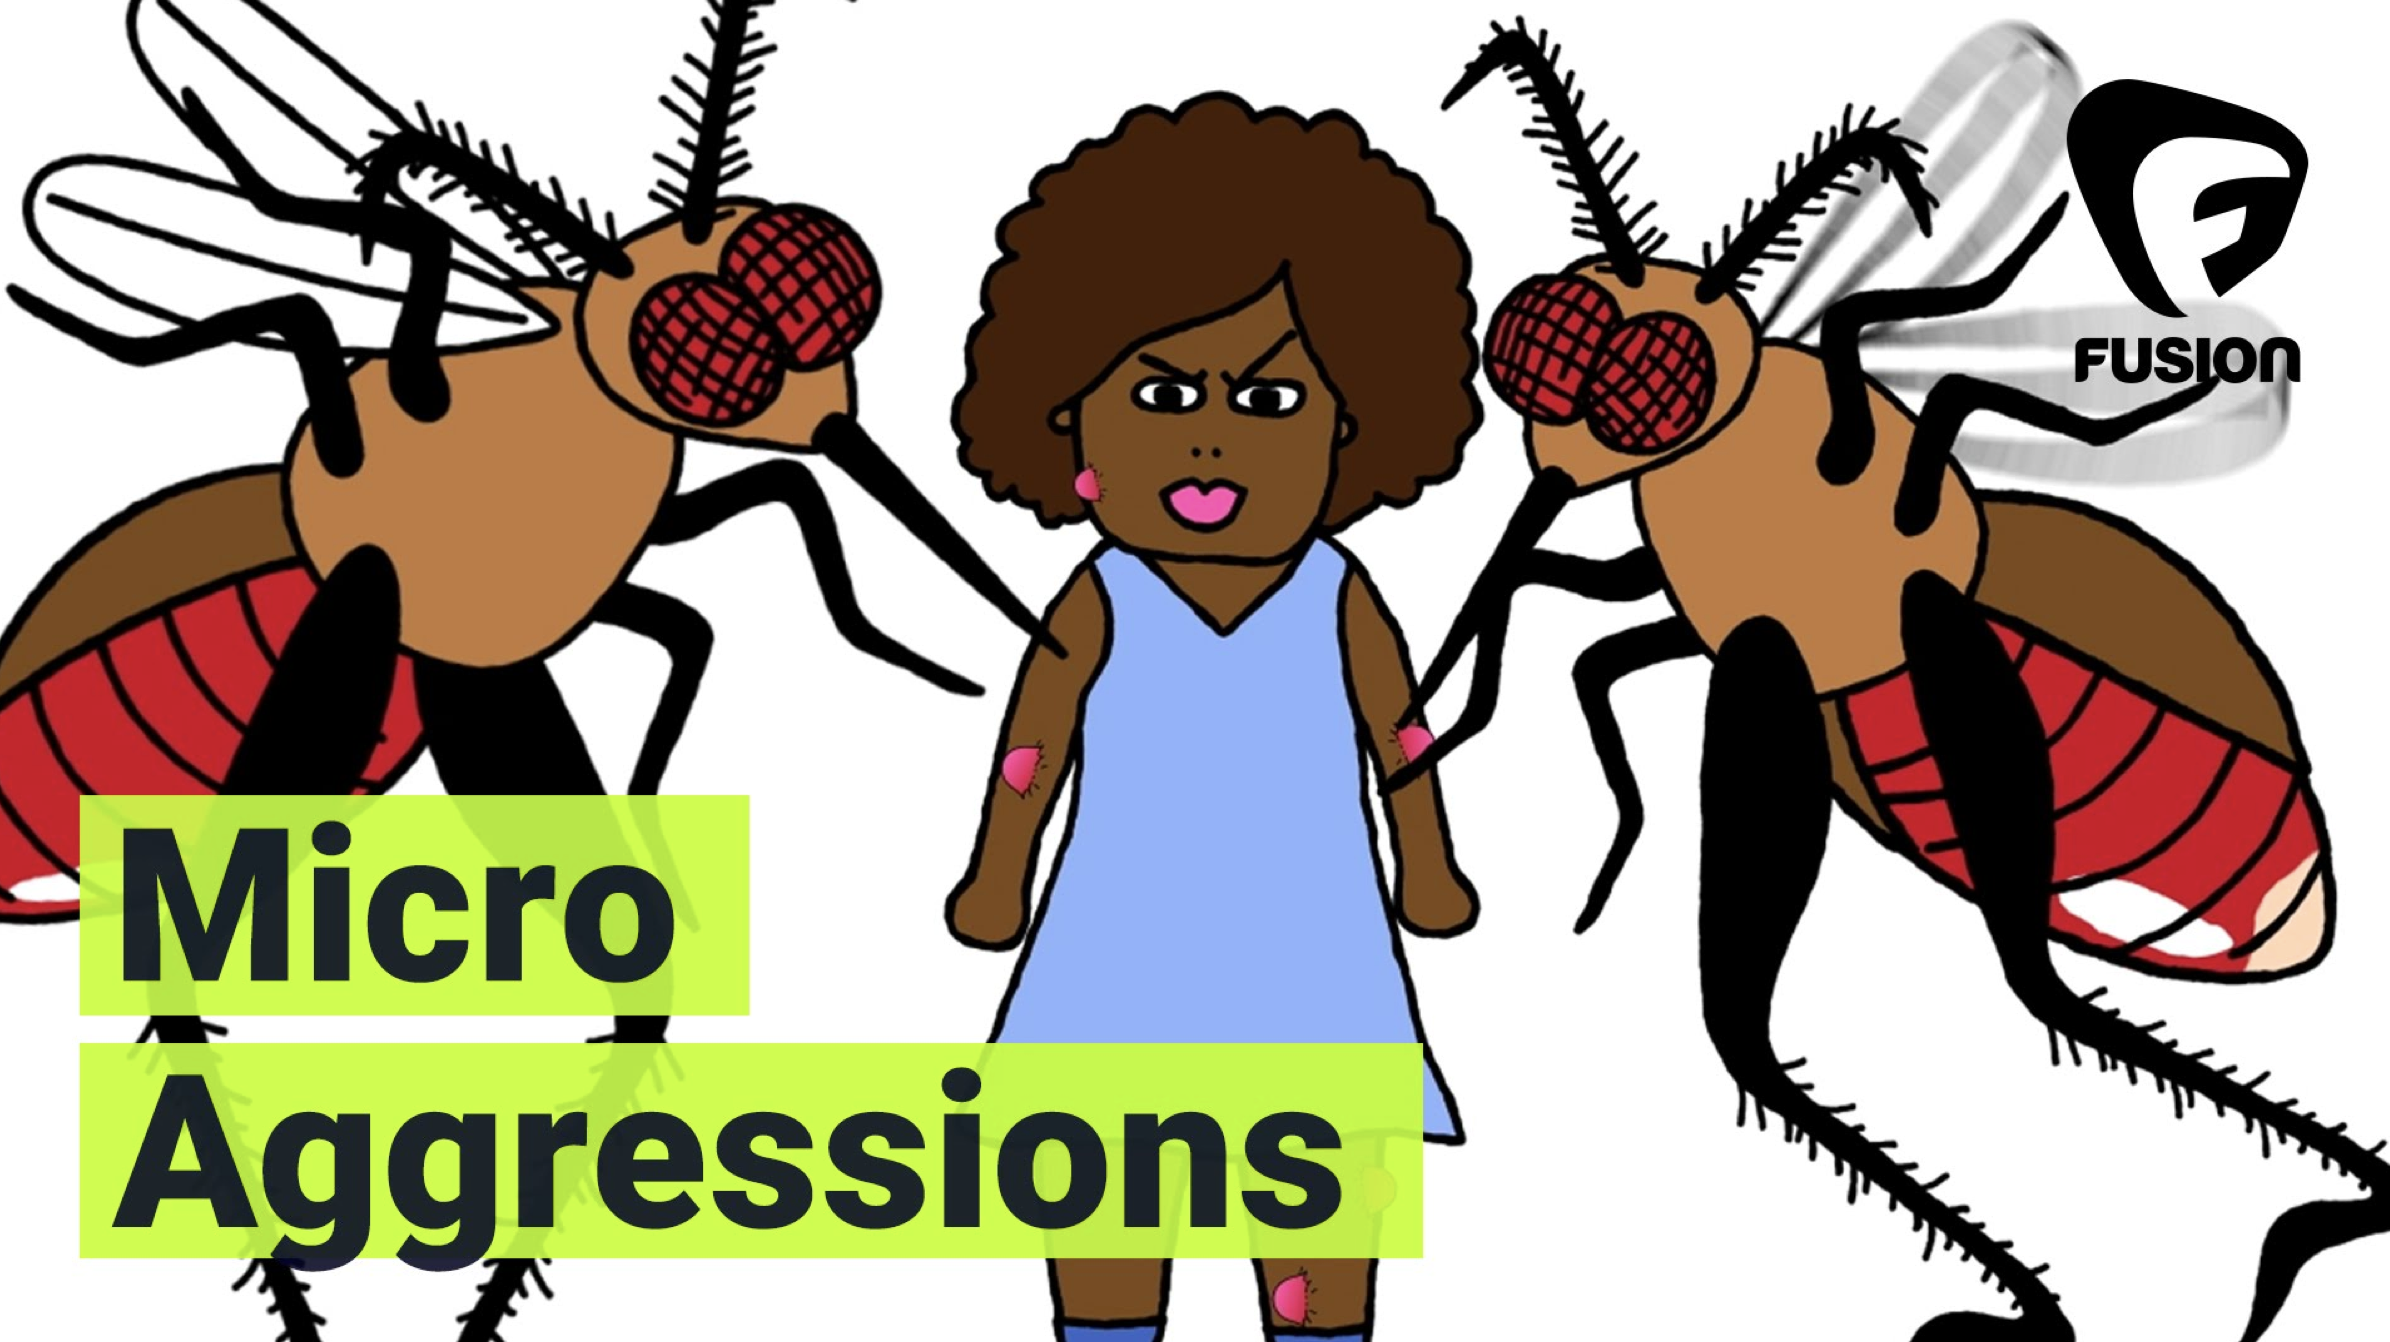 Microagressions